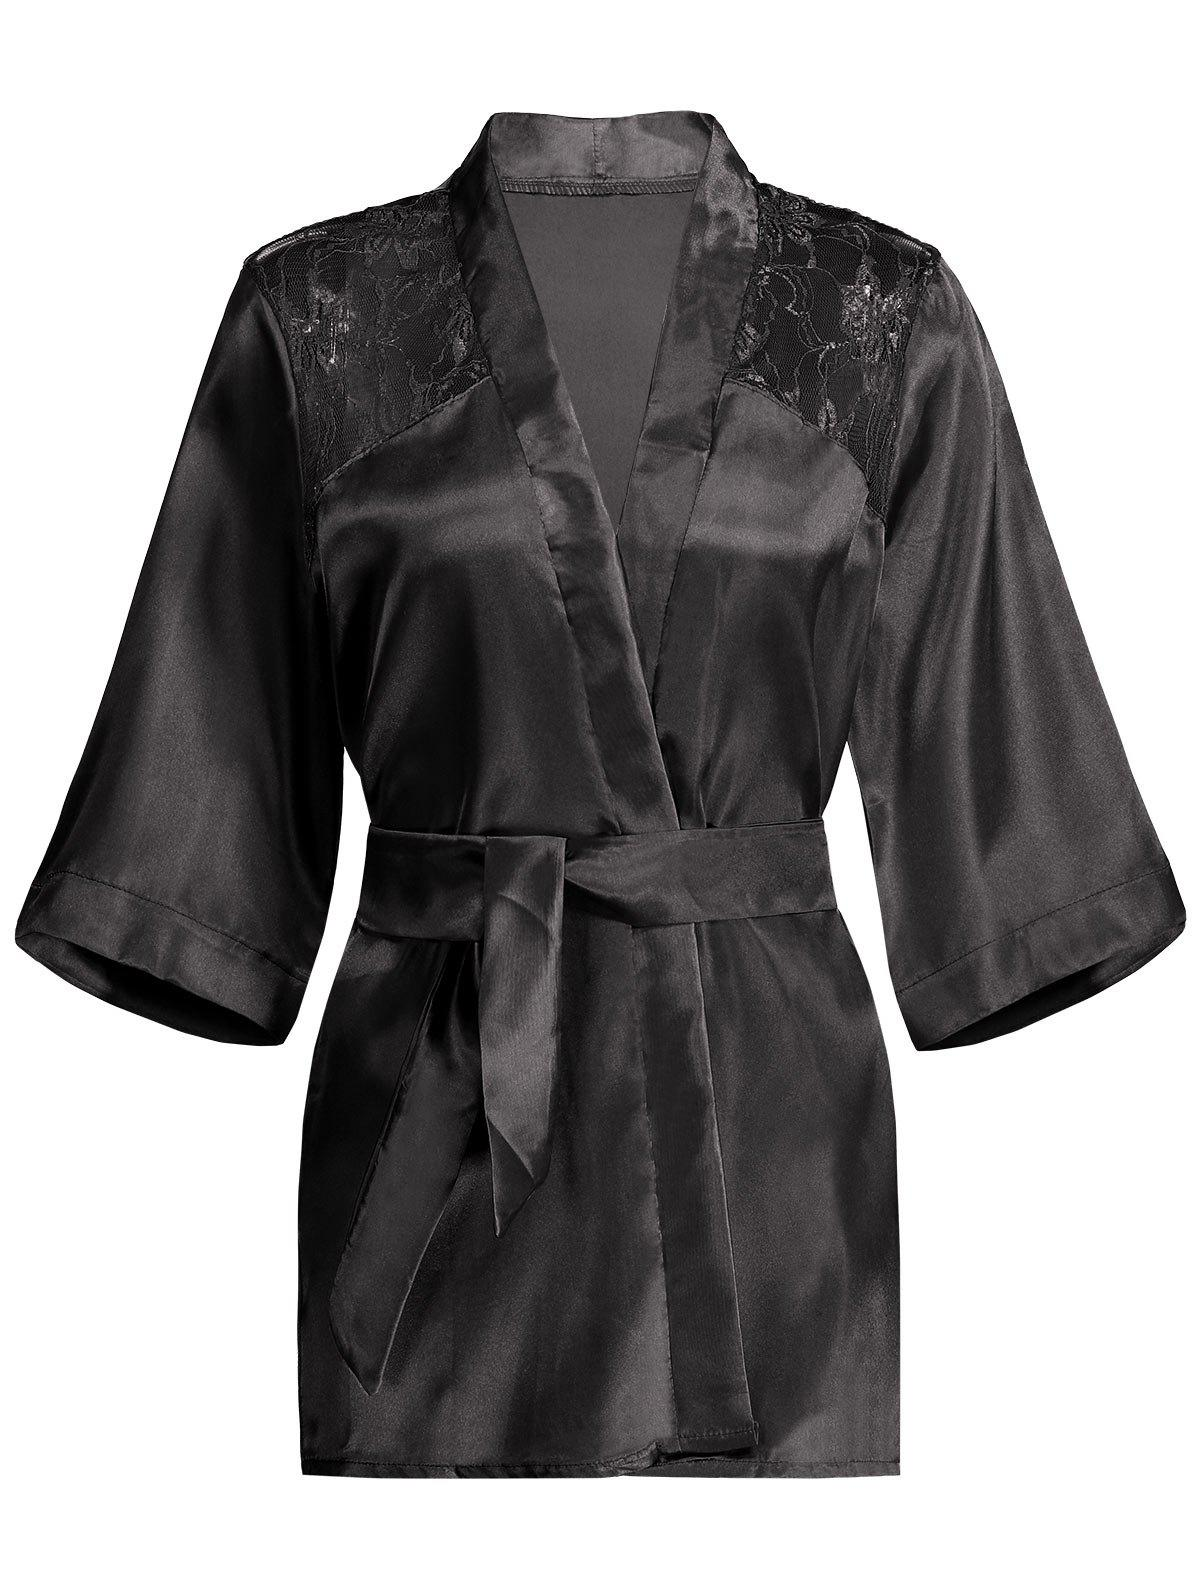 Lace Panel Sleep Wrap RobeWOMEN<br><br>Size: S; Color: BLACK; Material: Polyester; Pattern Type: Solid; Weight: 0.2100kg; Package Contents: 1 x Robe  1 x Belt;